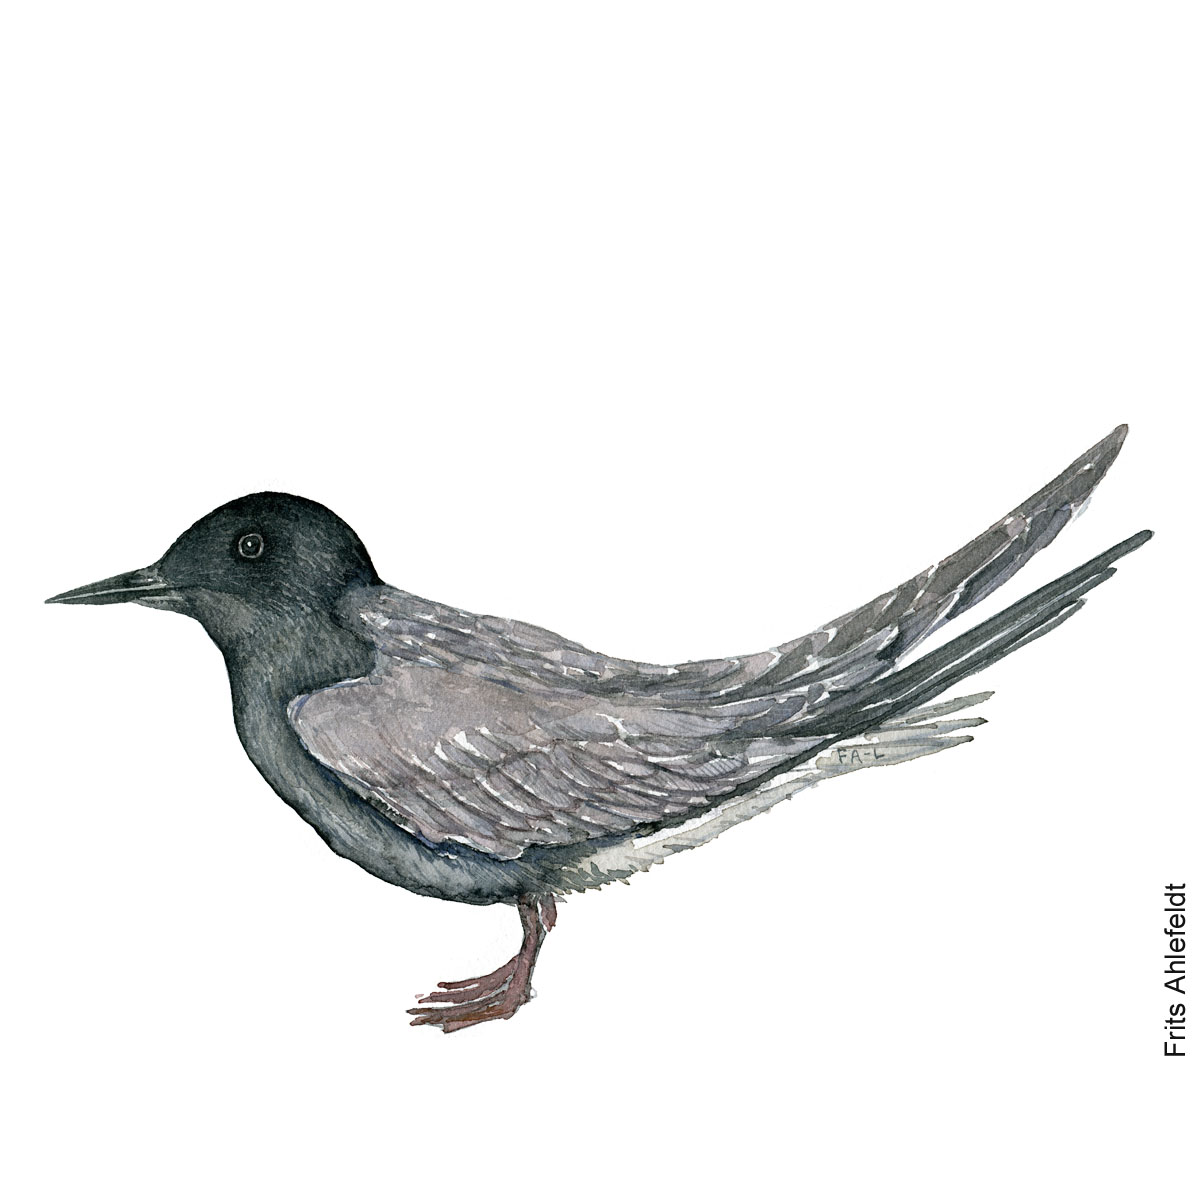 Black tern. Bird watercolor illustration handmade by Frits Ahlefeldt